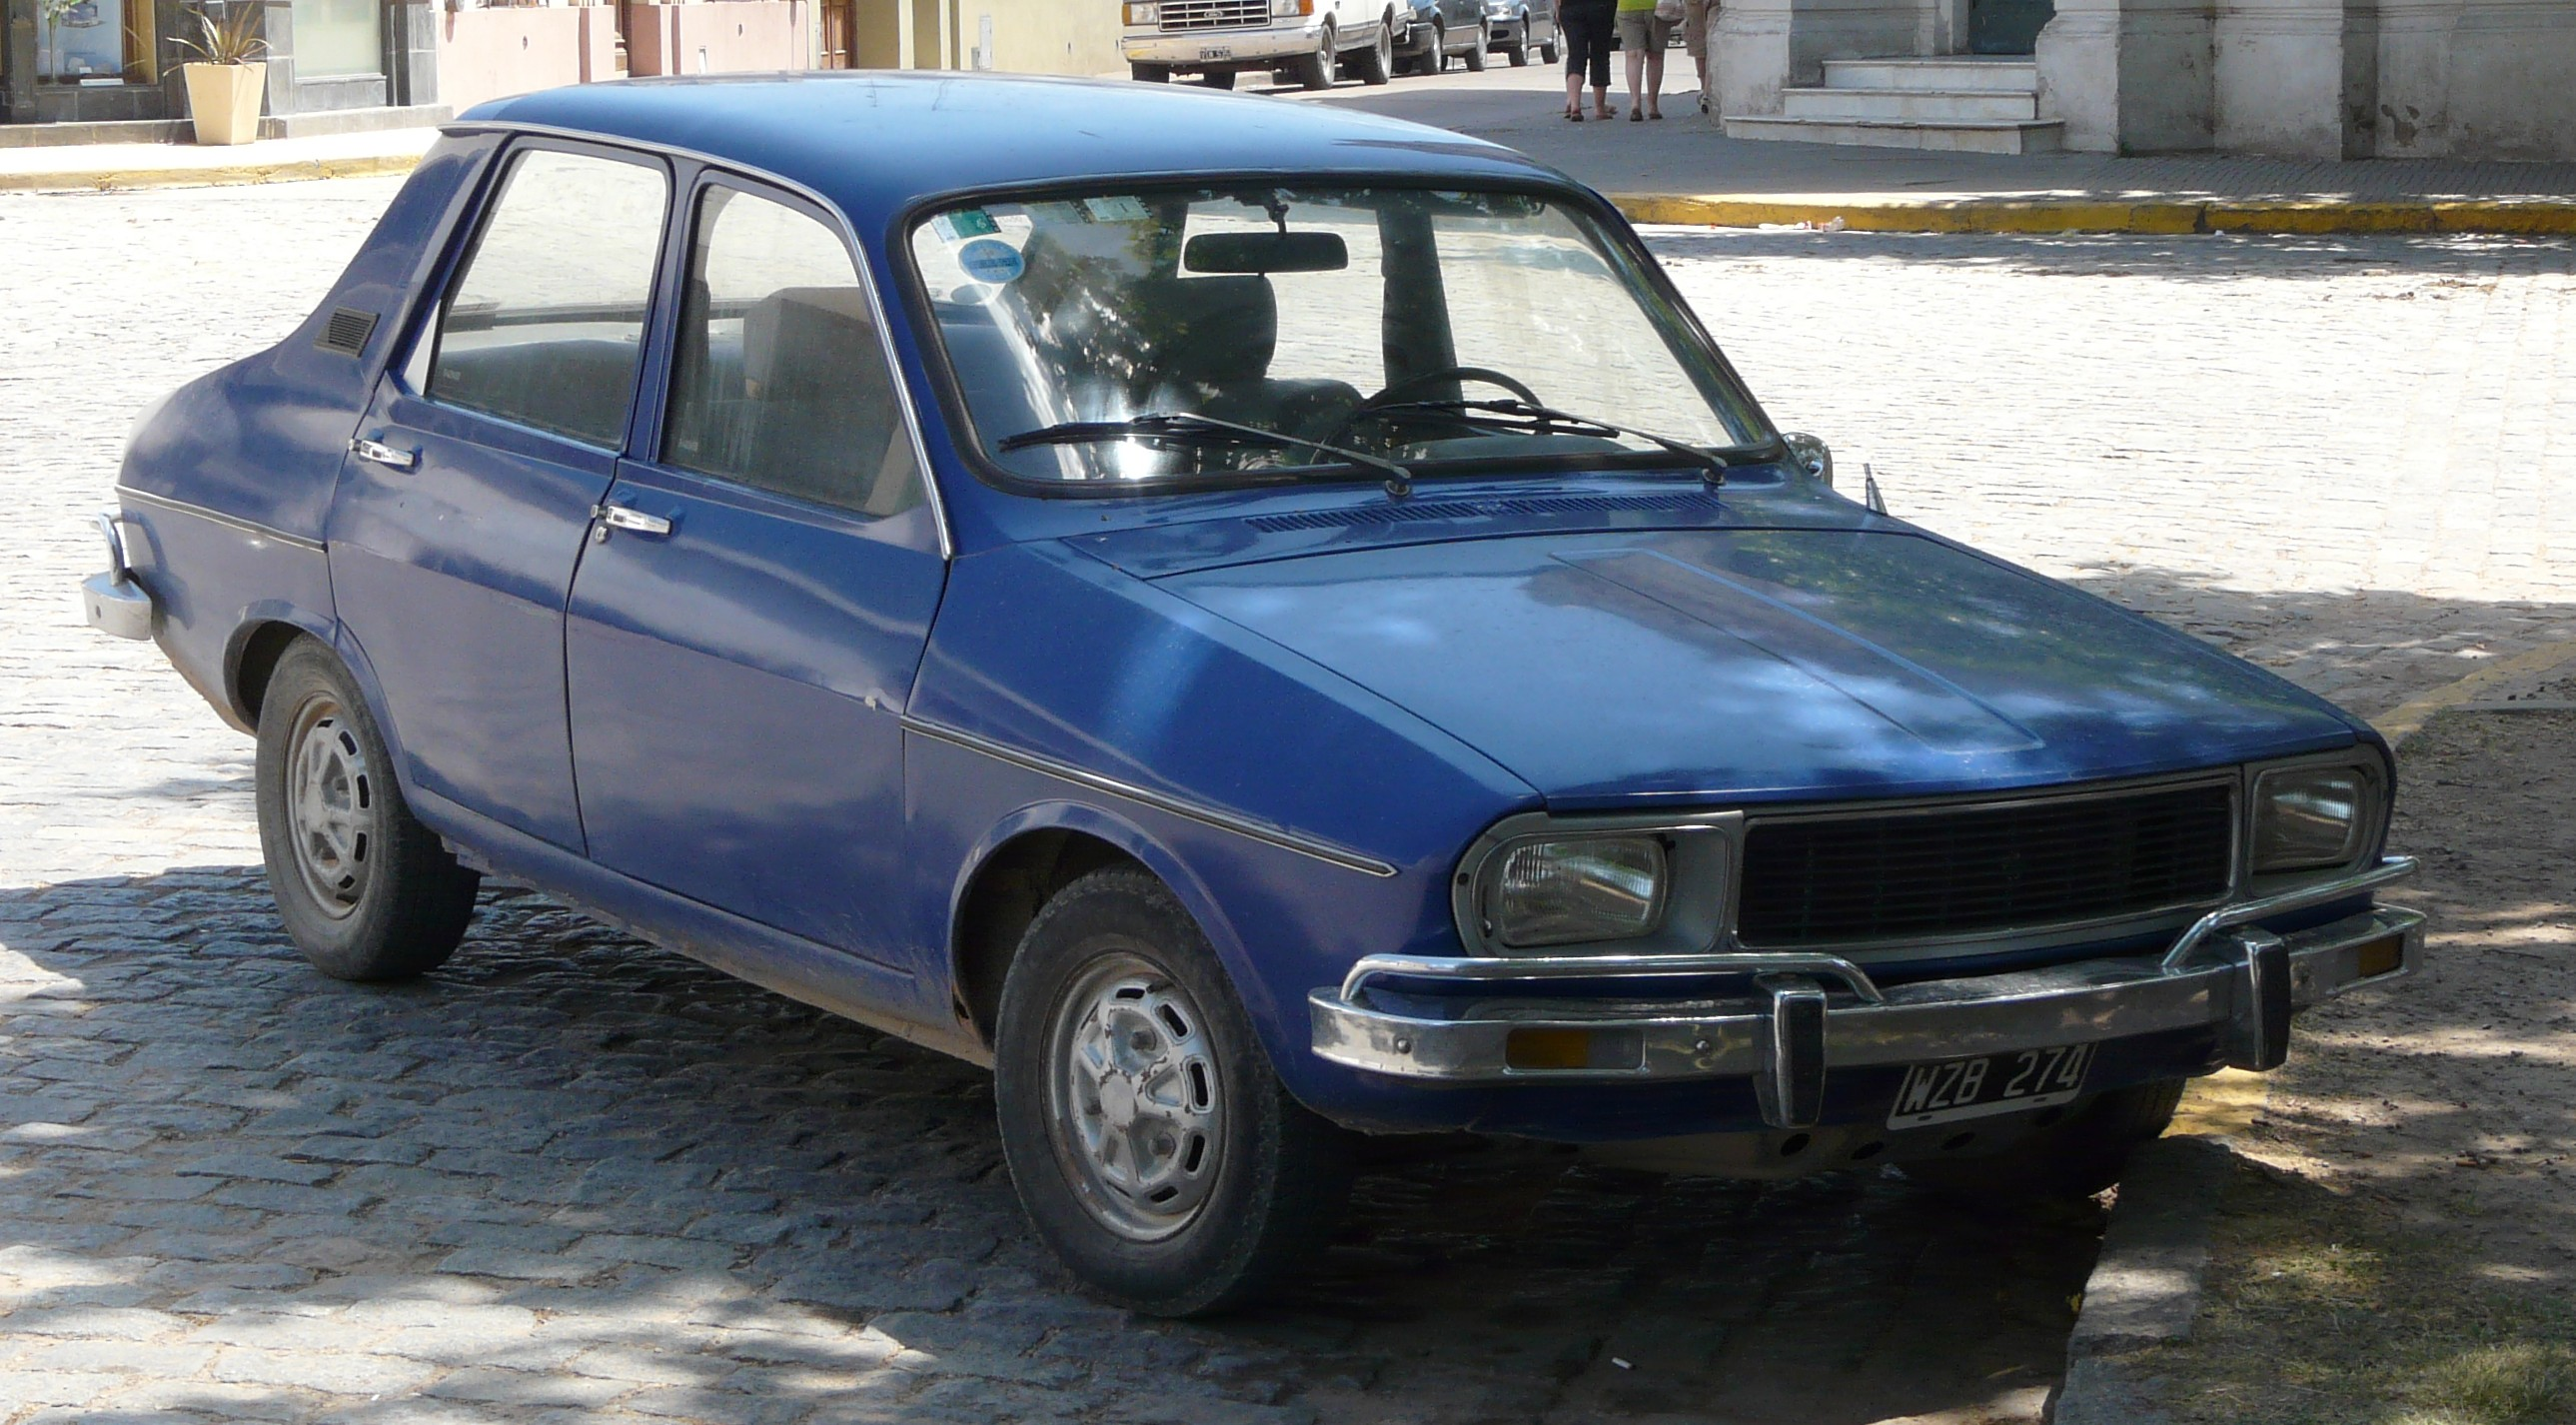 Renault 12 Argentina photos Wallpapers HD